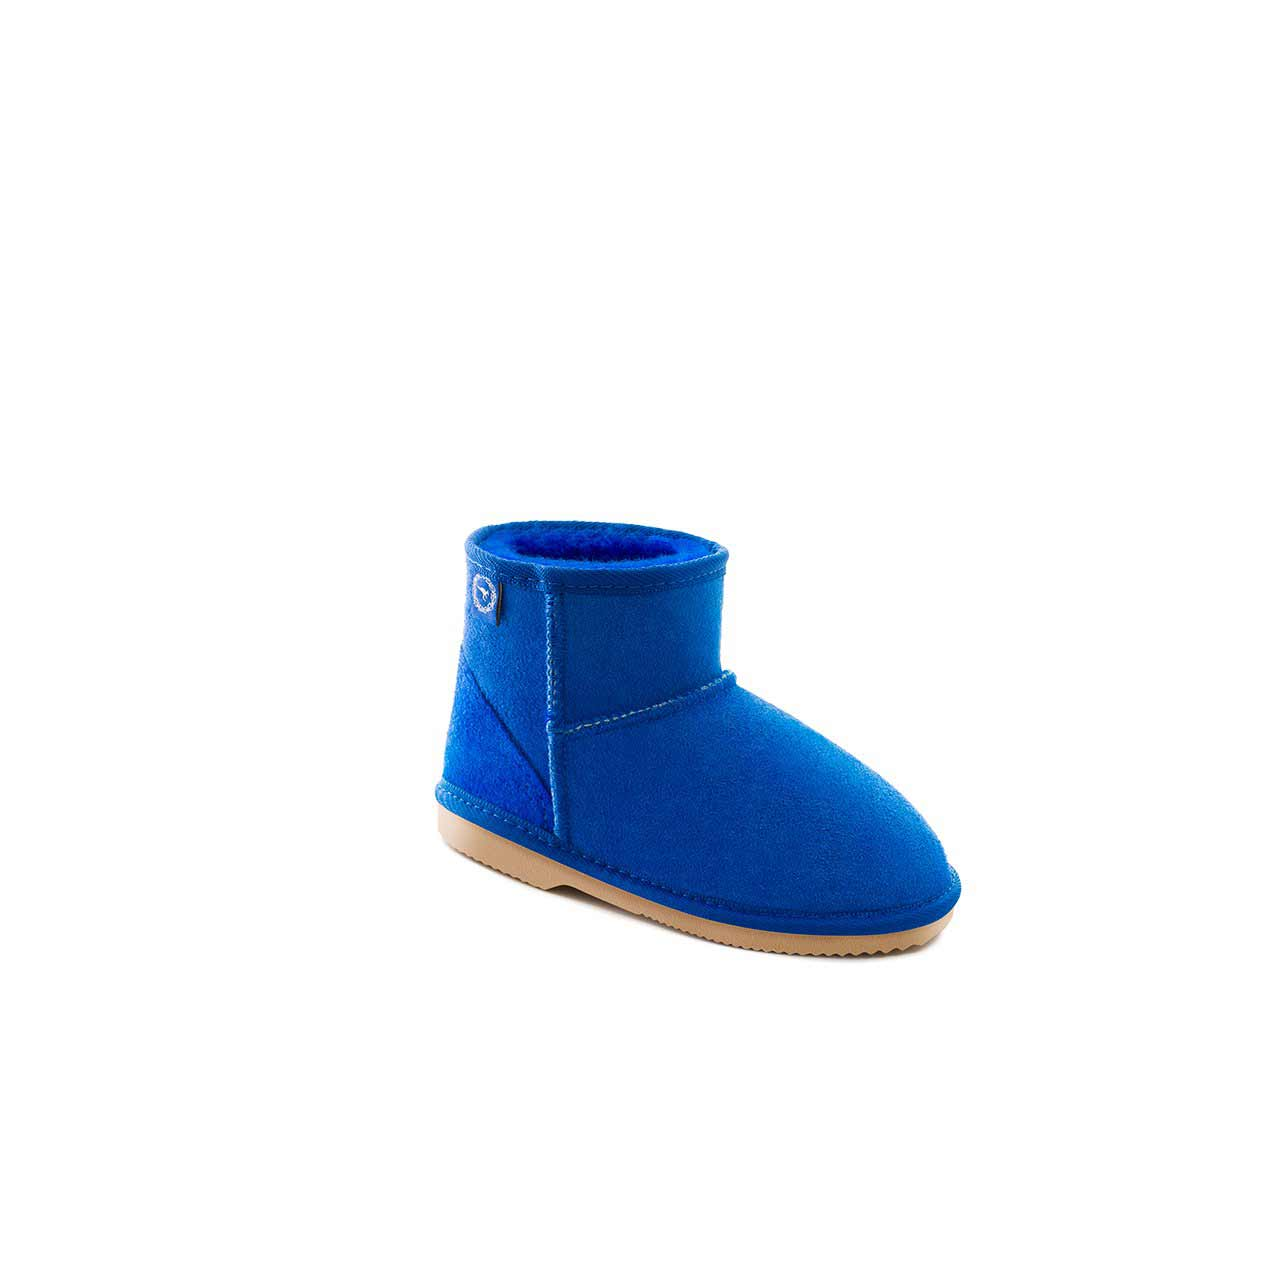 Children's Mini Boots | 100% Australian Made | Ugg Australia